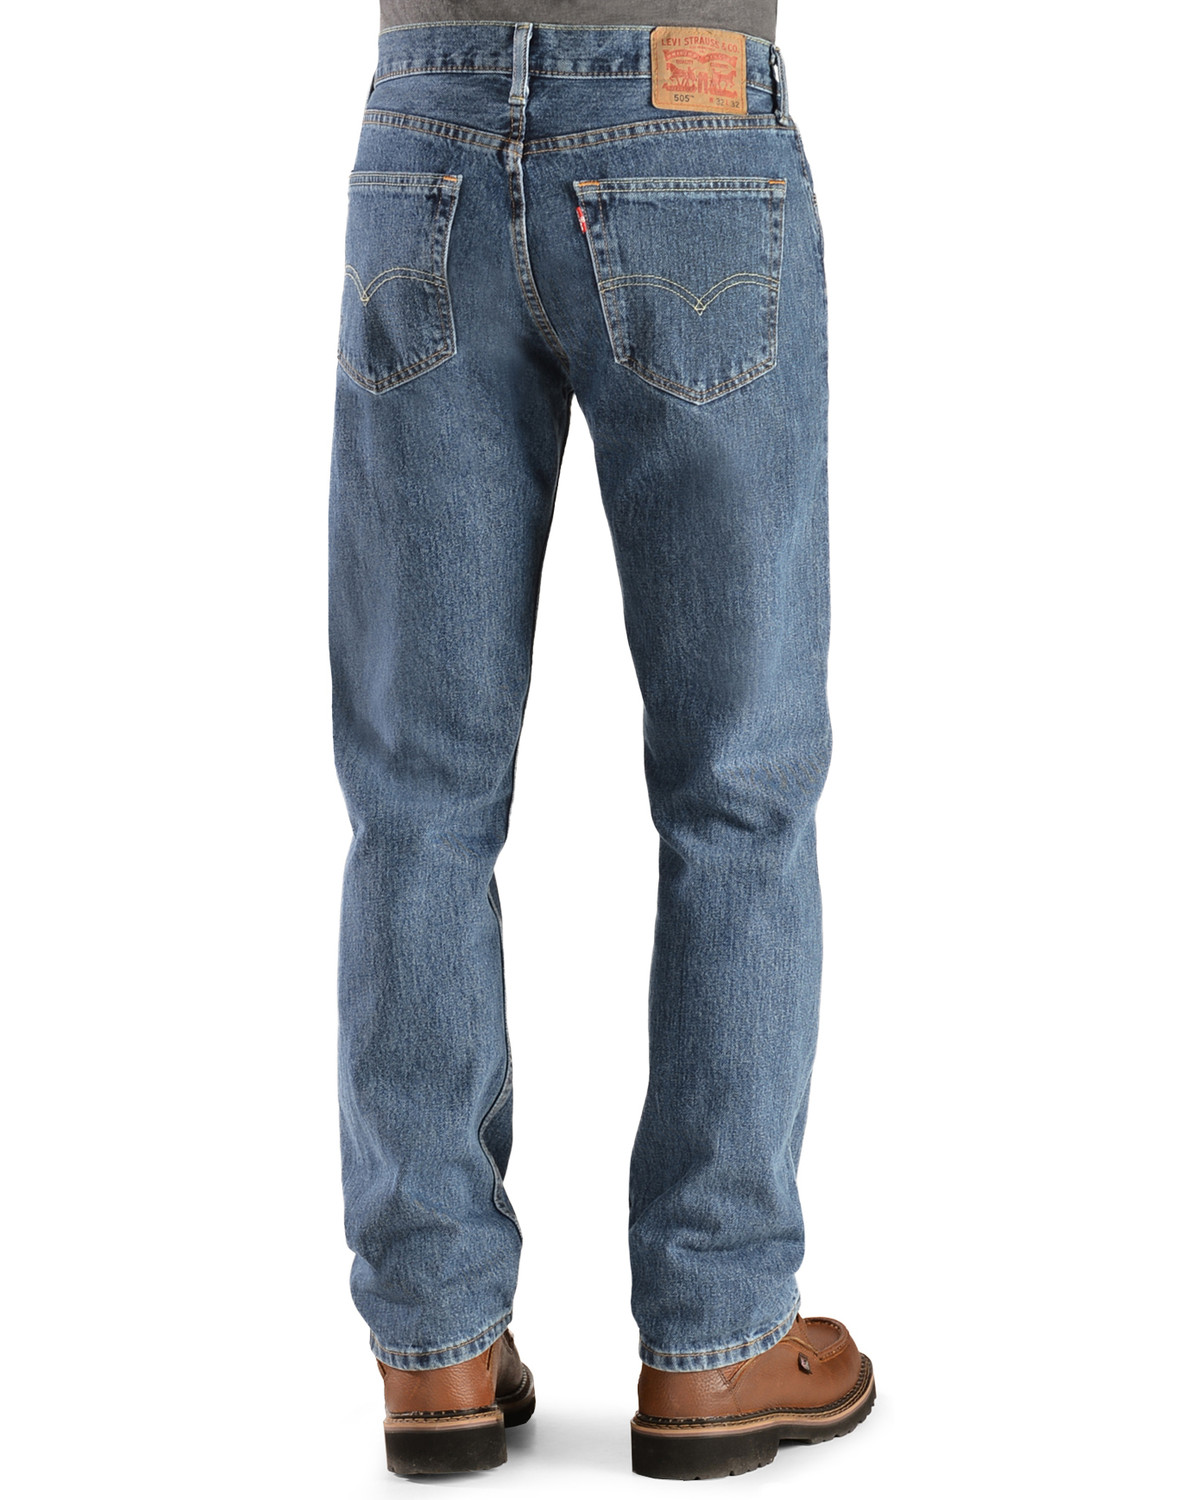 Levi's 505 Jeans - Prewashed Regular Fit - Country Outfitter